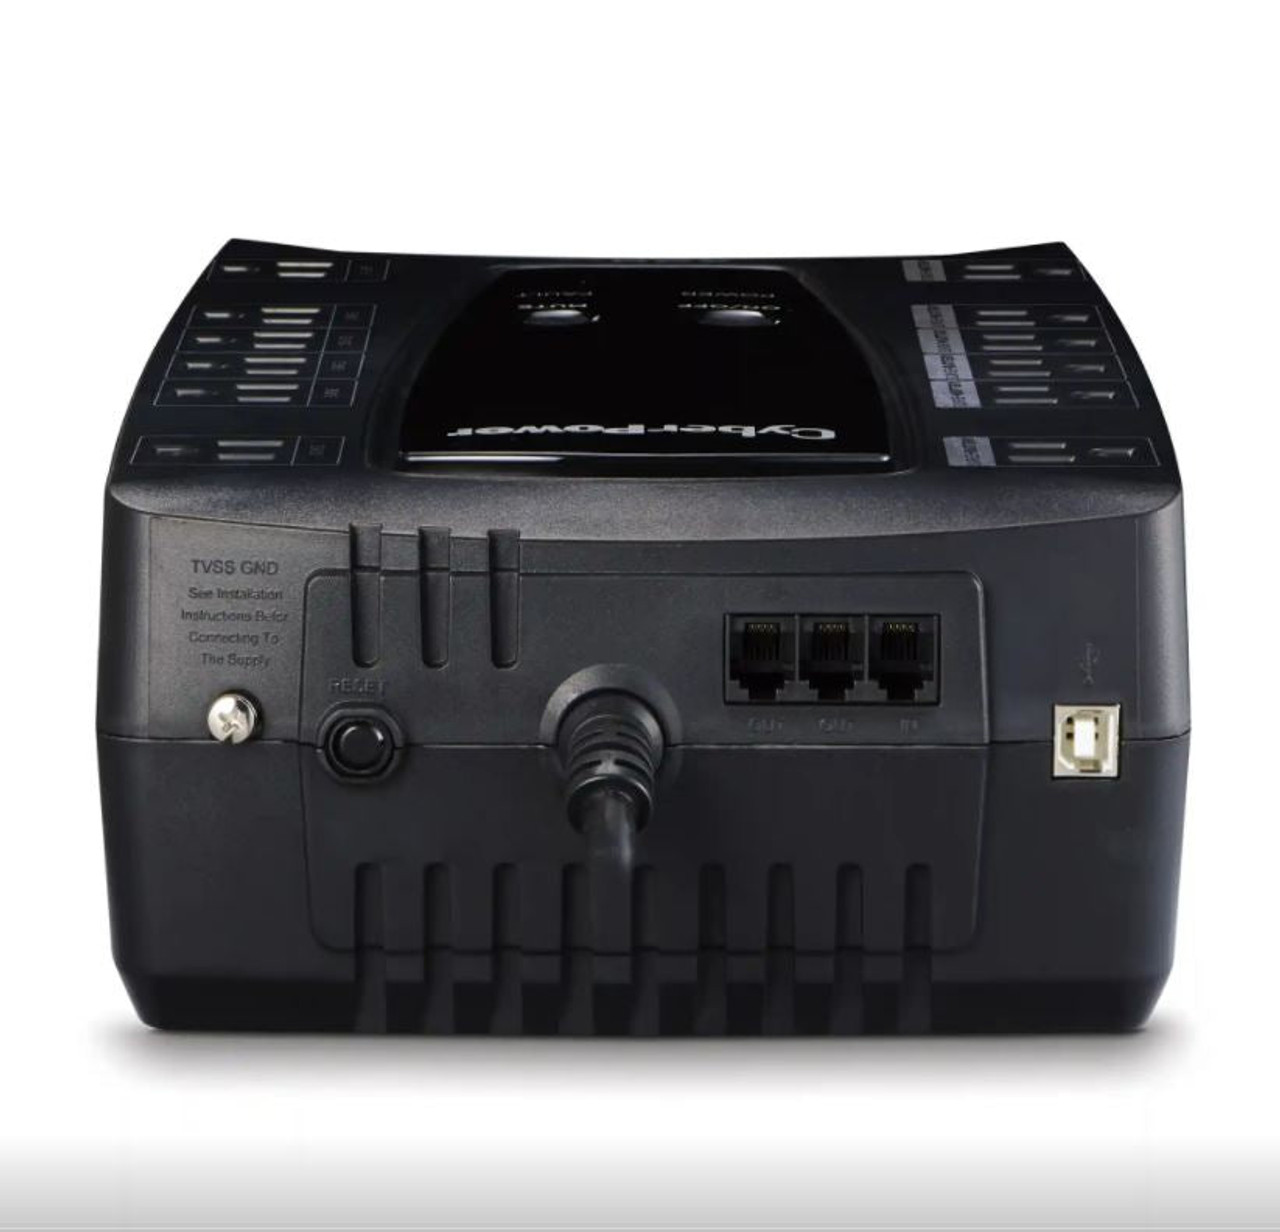 CyberPower LE850G-R Battery Backup 850VA/460W with Surge Protection UPS - Certified Refurbished